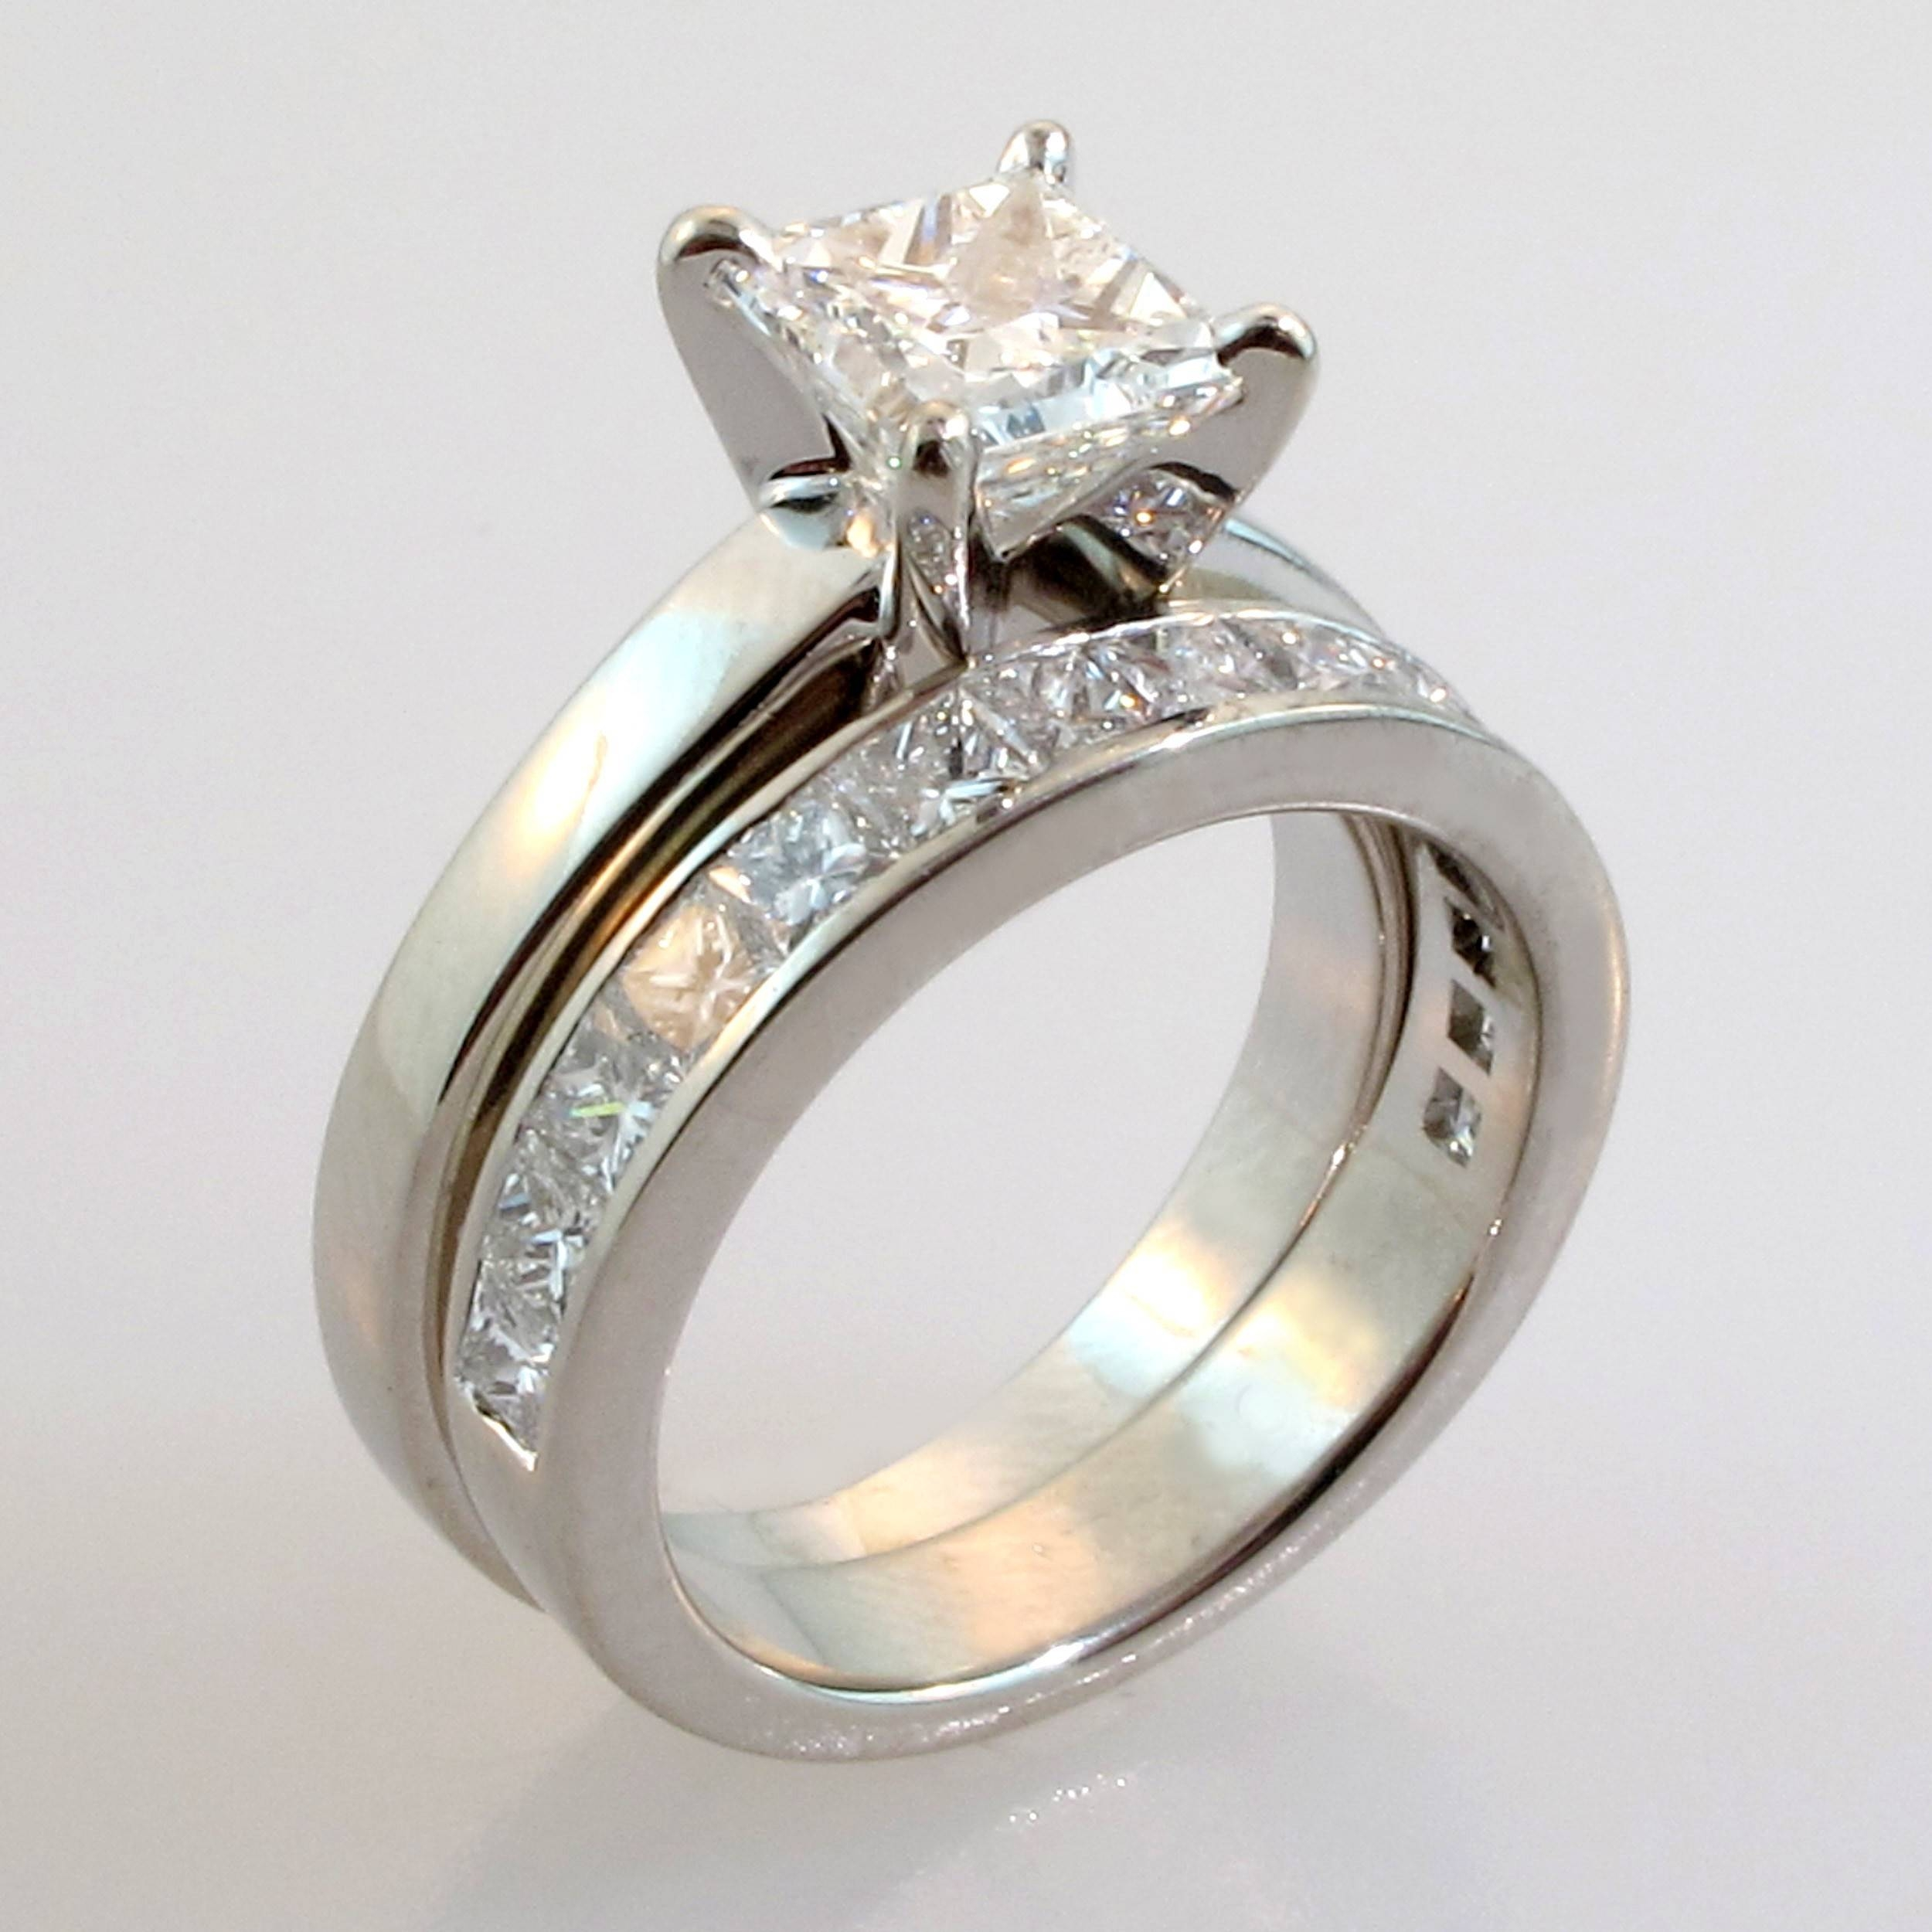 Jared Mens Wedding Rings Best Of Mens Engagement Rings Jared Best Throughout Jared Mens Engagement Rings (Gallery 10 of 15)